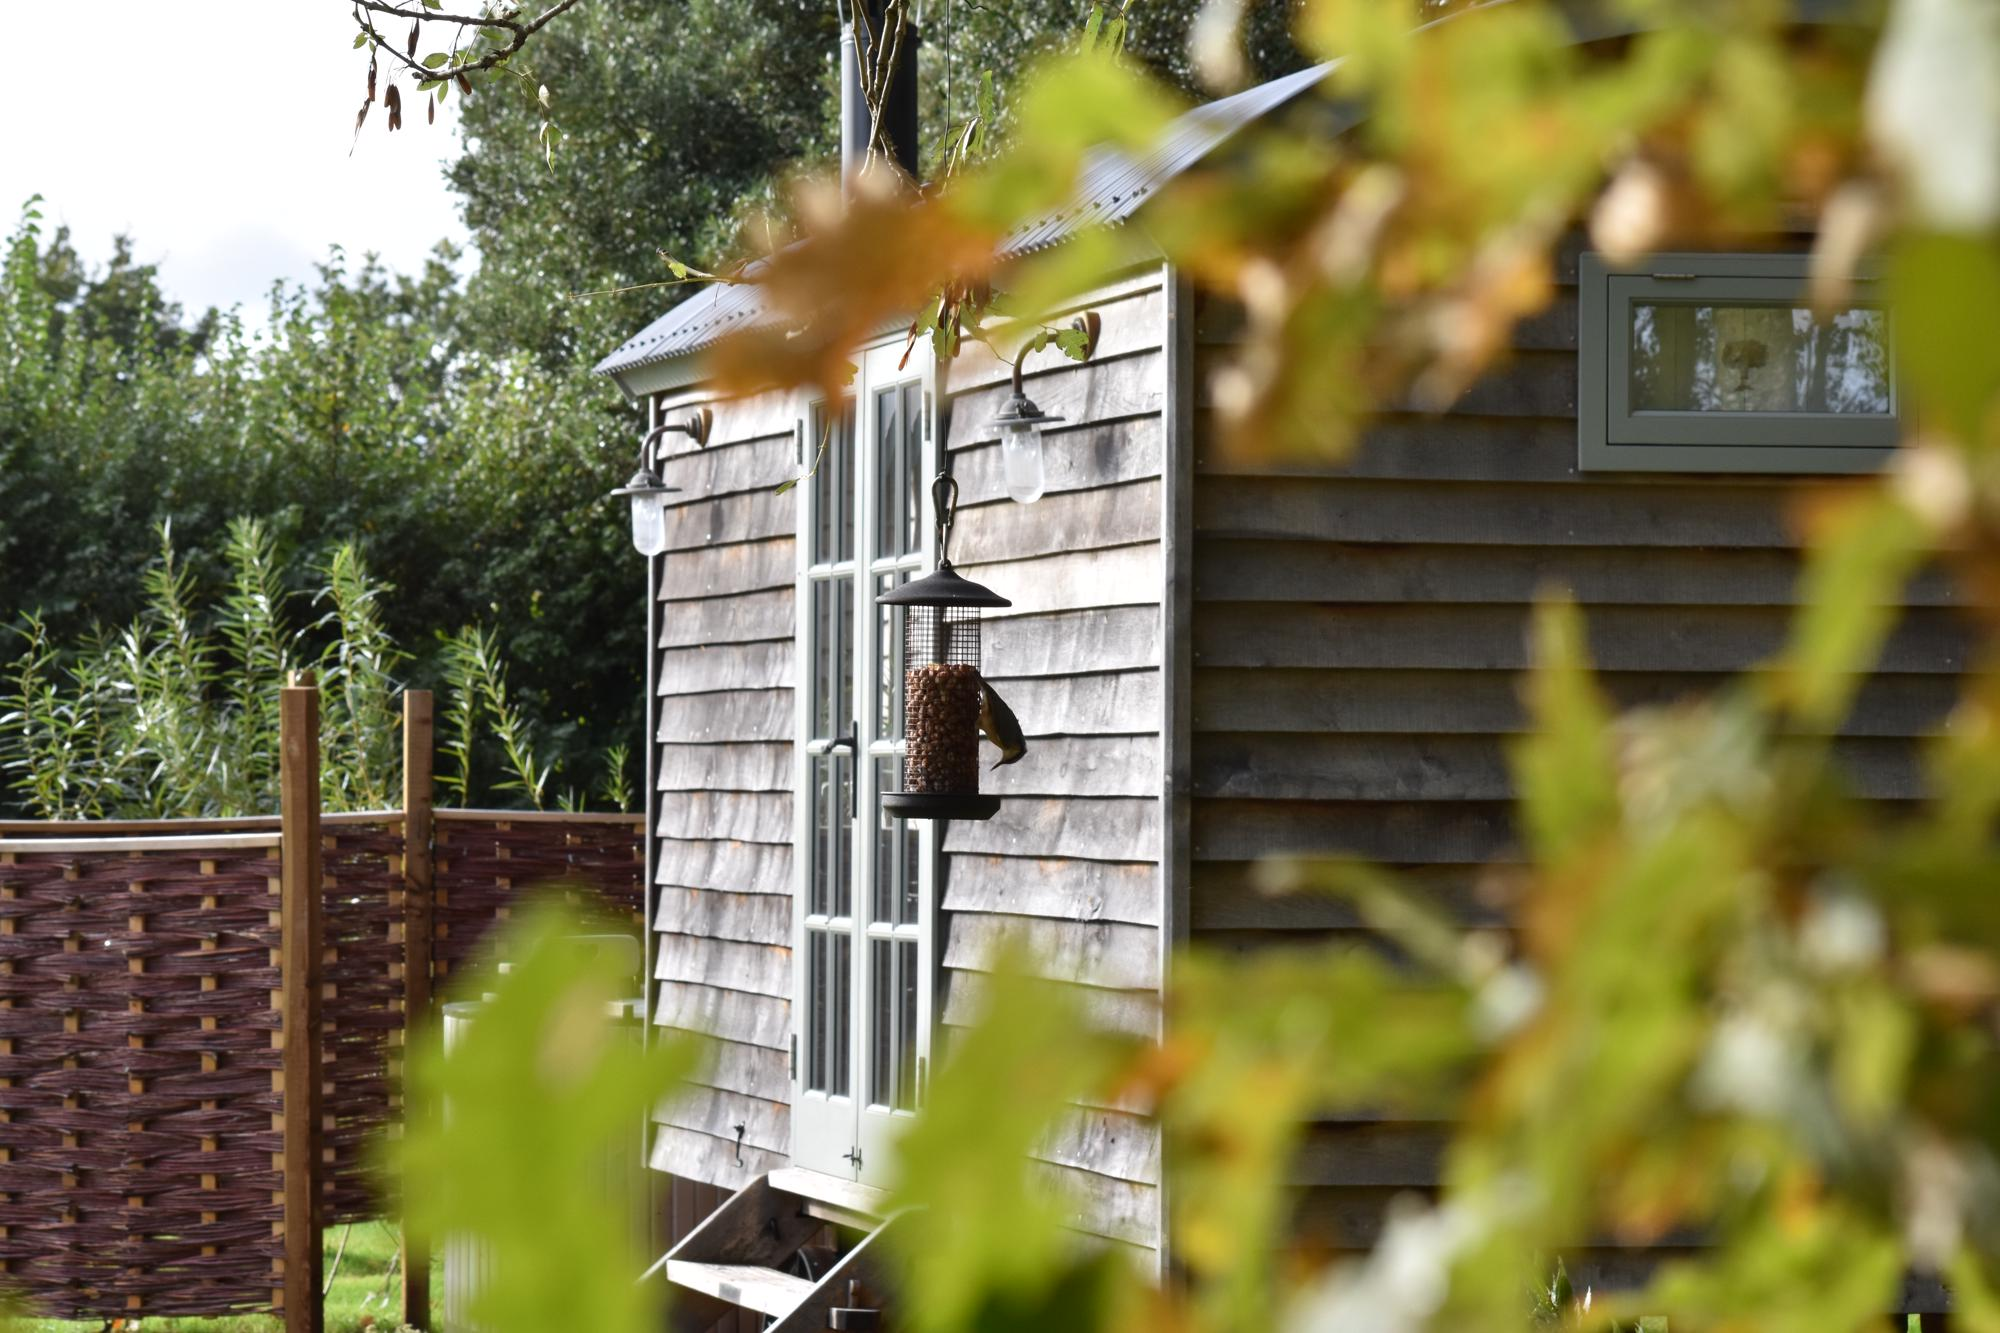 Glamping in Ilminster holidays at Cool Camping